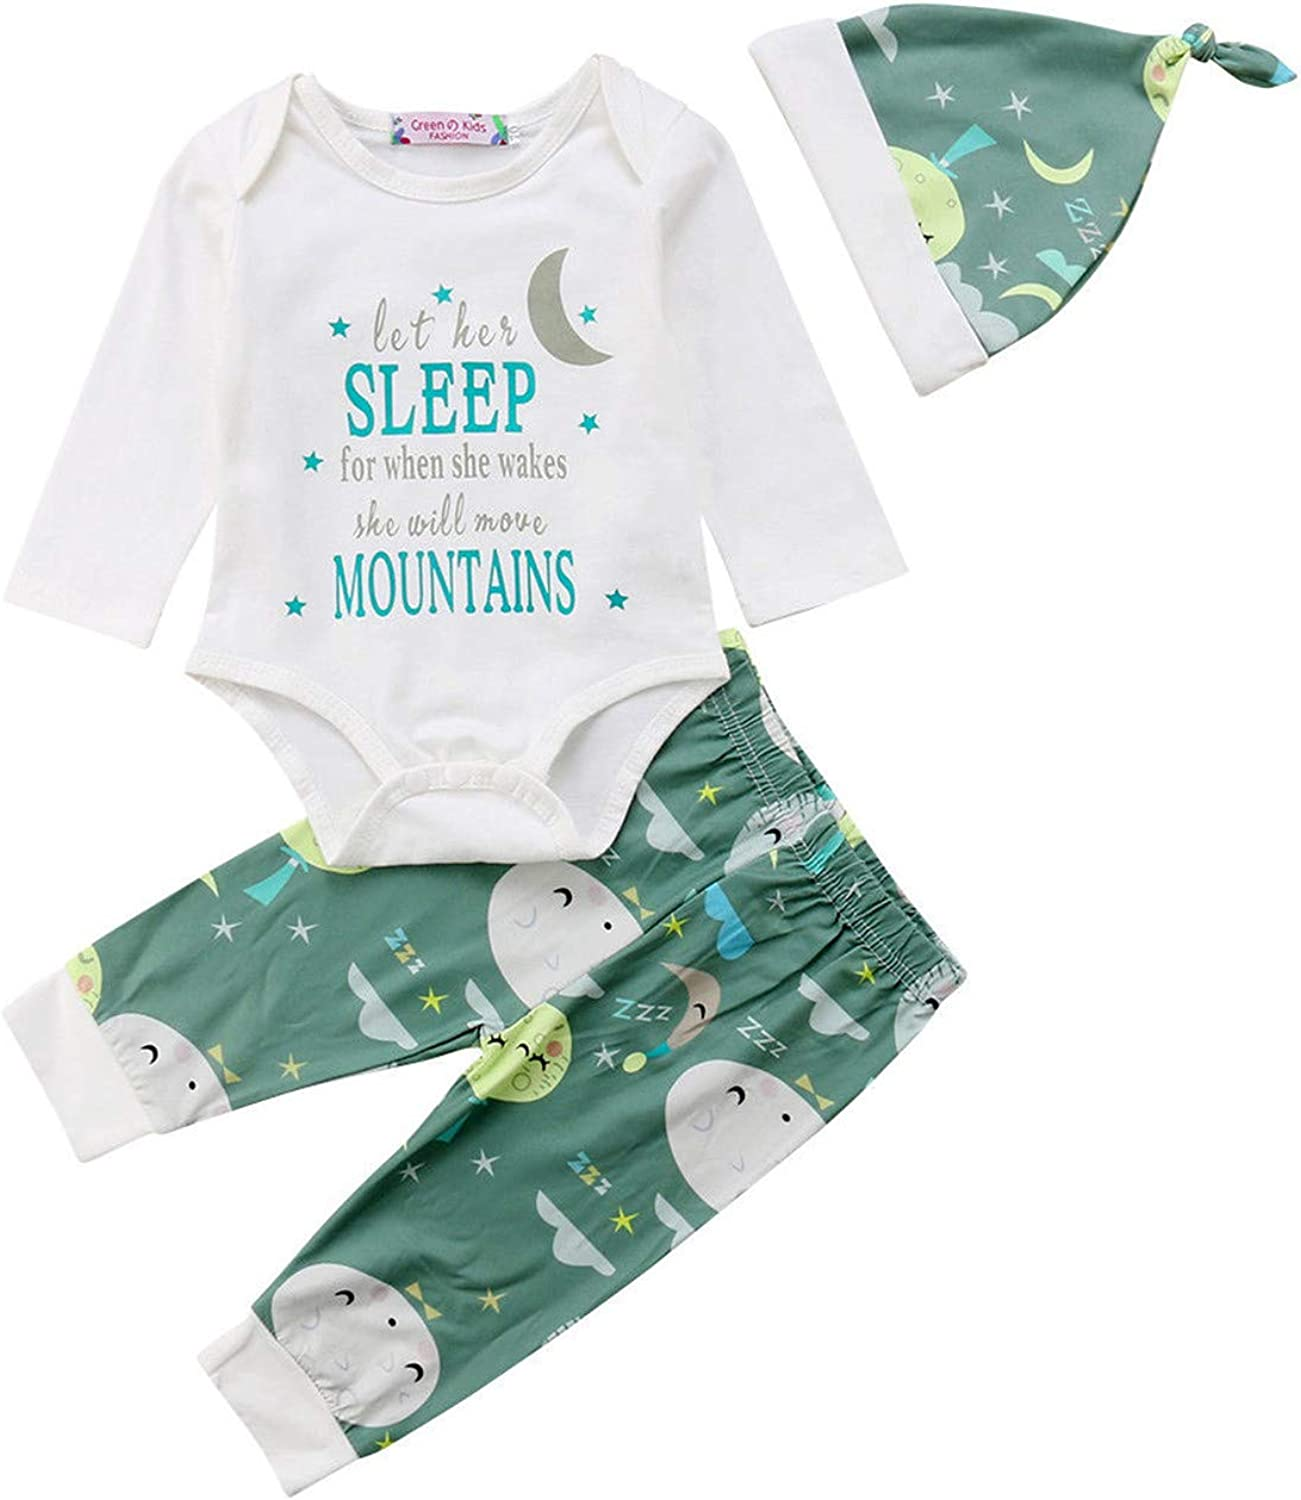 Baby Clothing Unisex Baby Clothes Baby Bodysuit Moon onesie baby girl gift Baby boy gift boho baby clothes Silver Moon Shirt